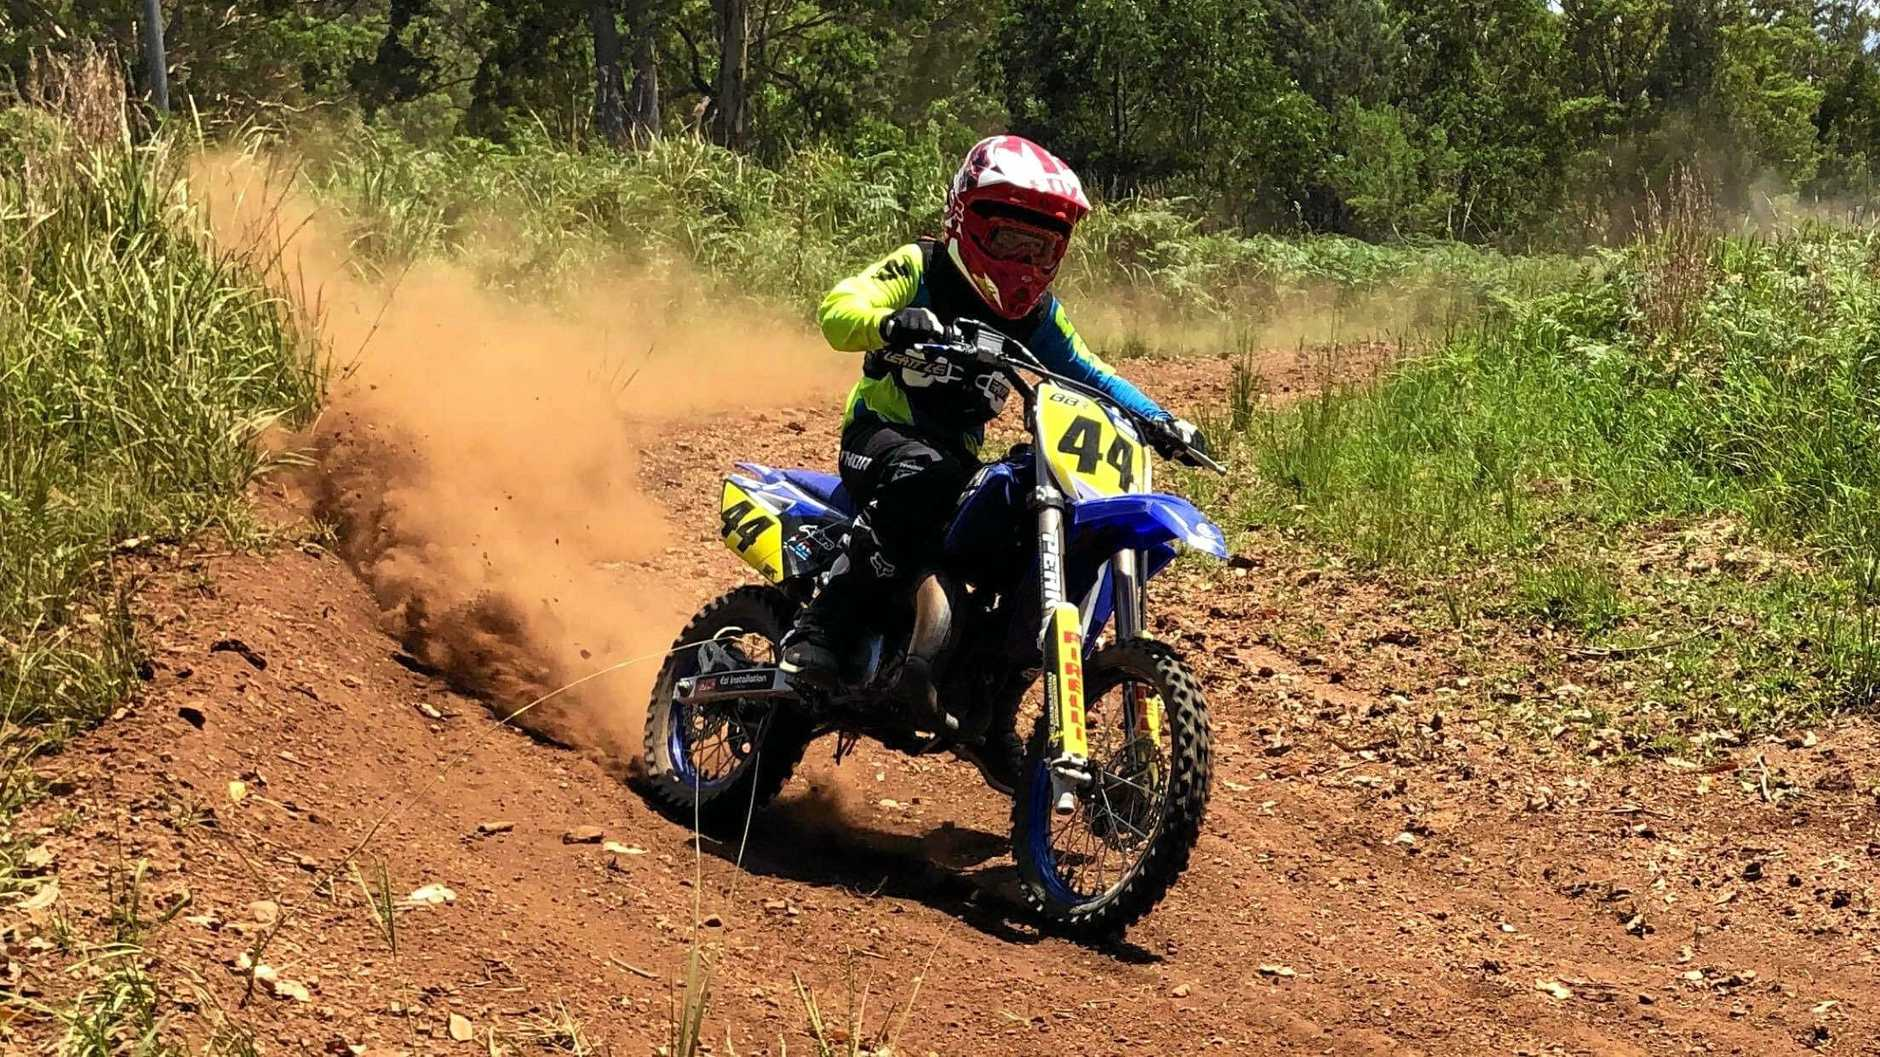 One of Bayden Blanchett's family riding on the motocross track on his property.